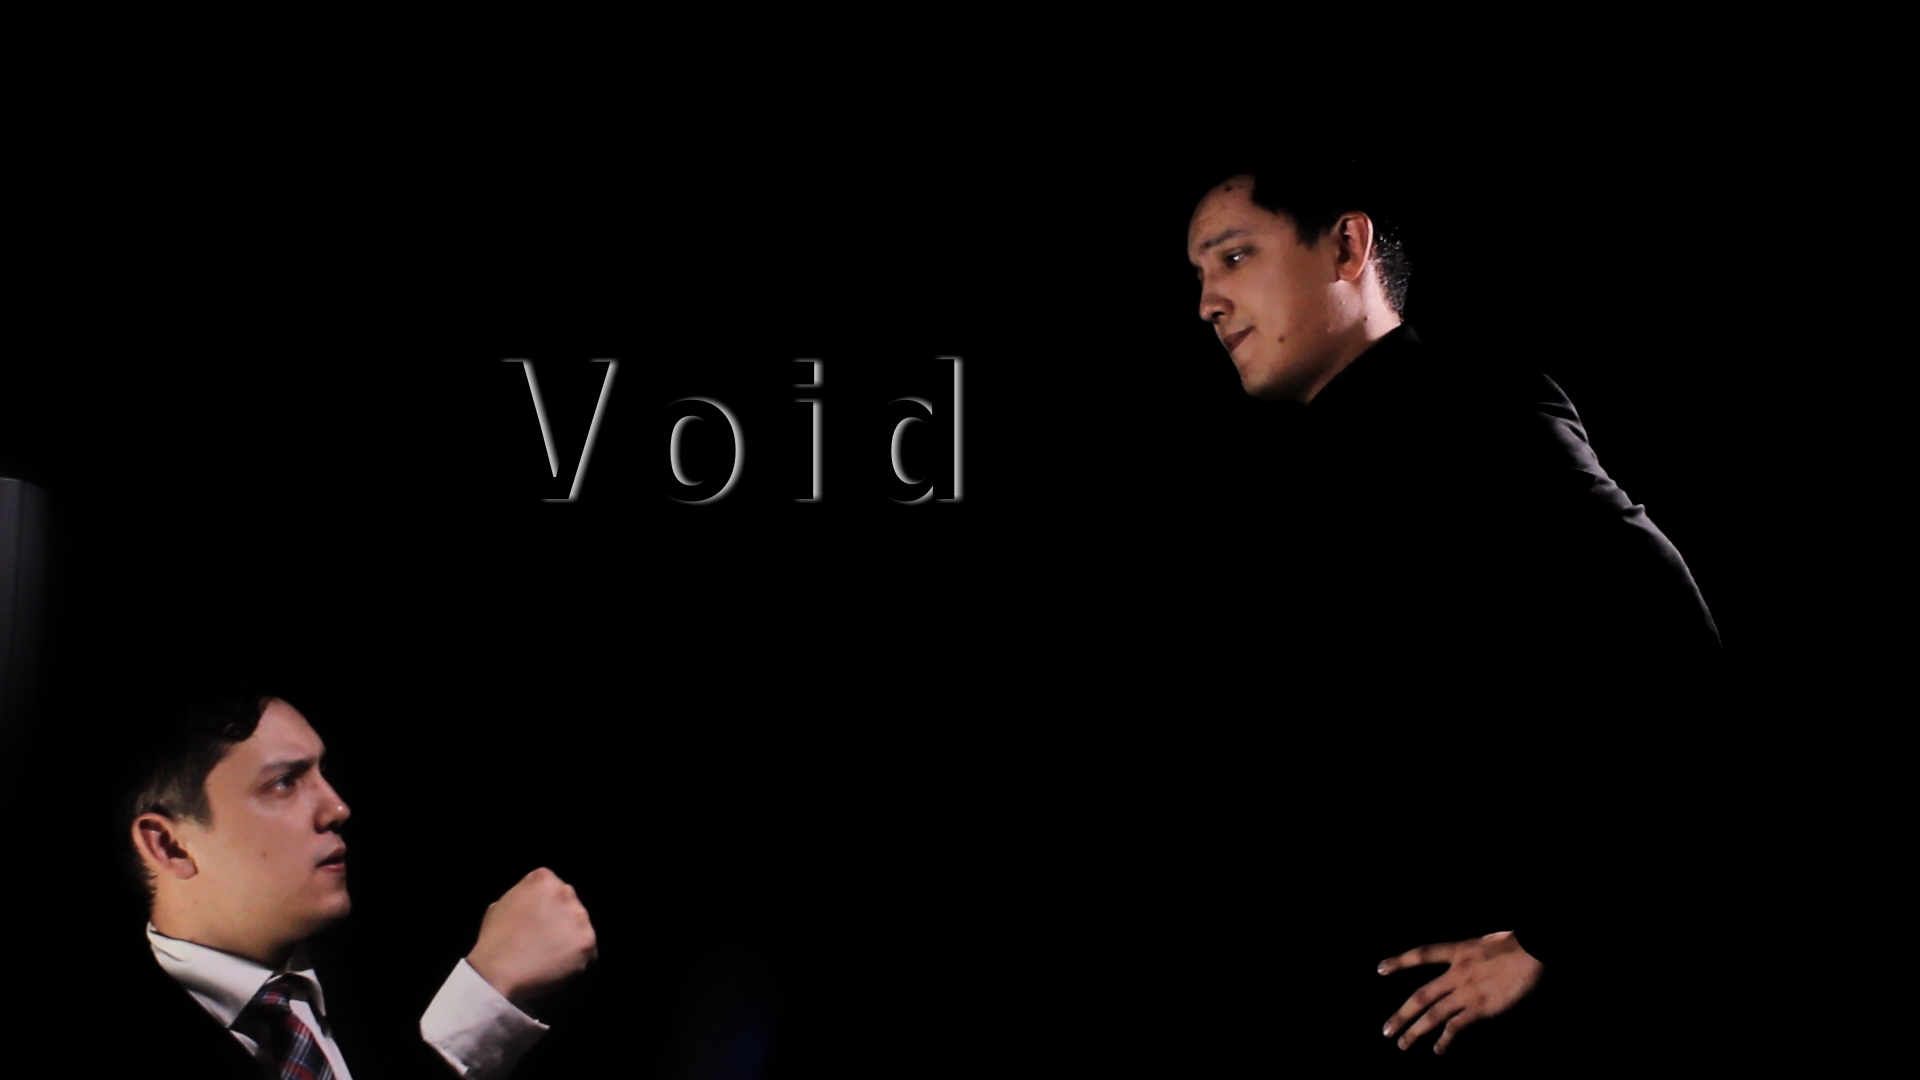 Void - My Rode Reel 2020